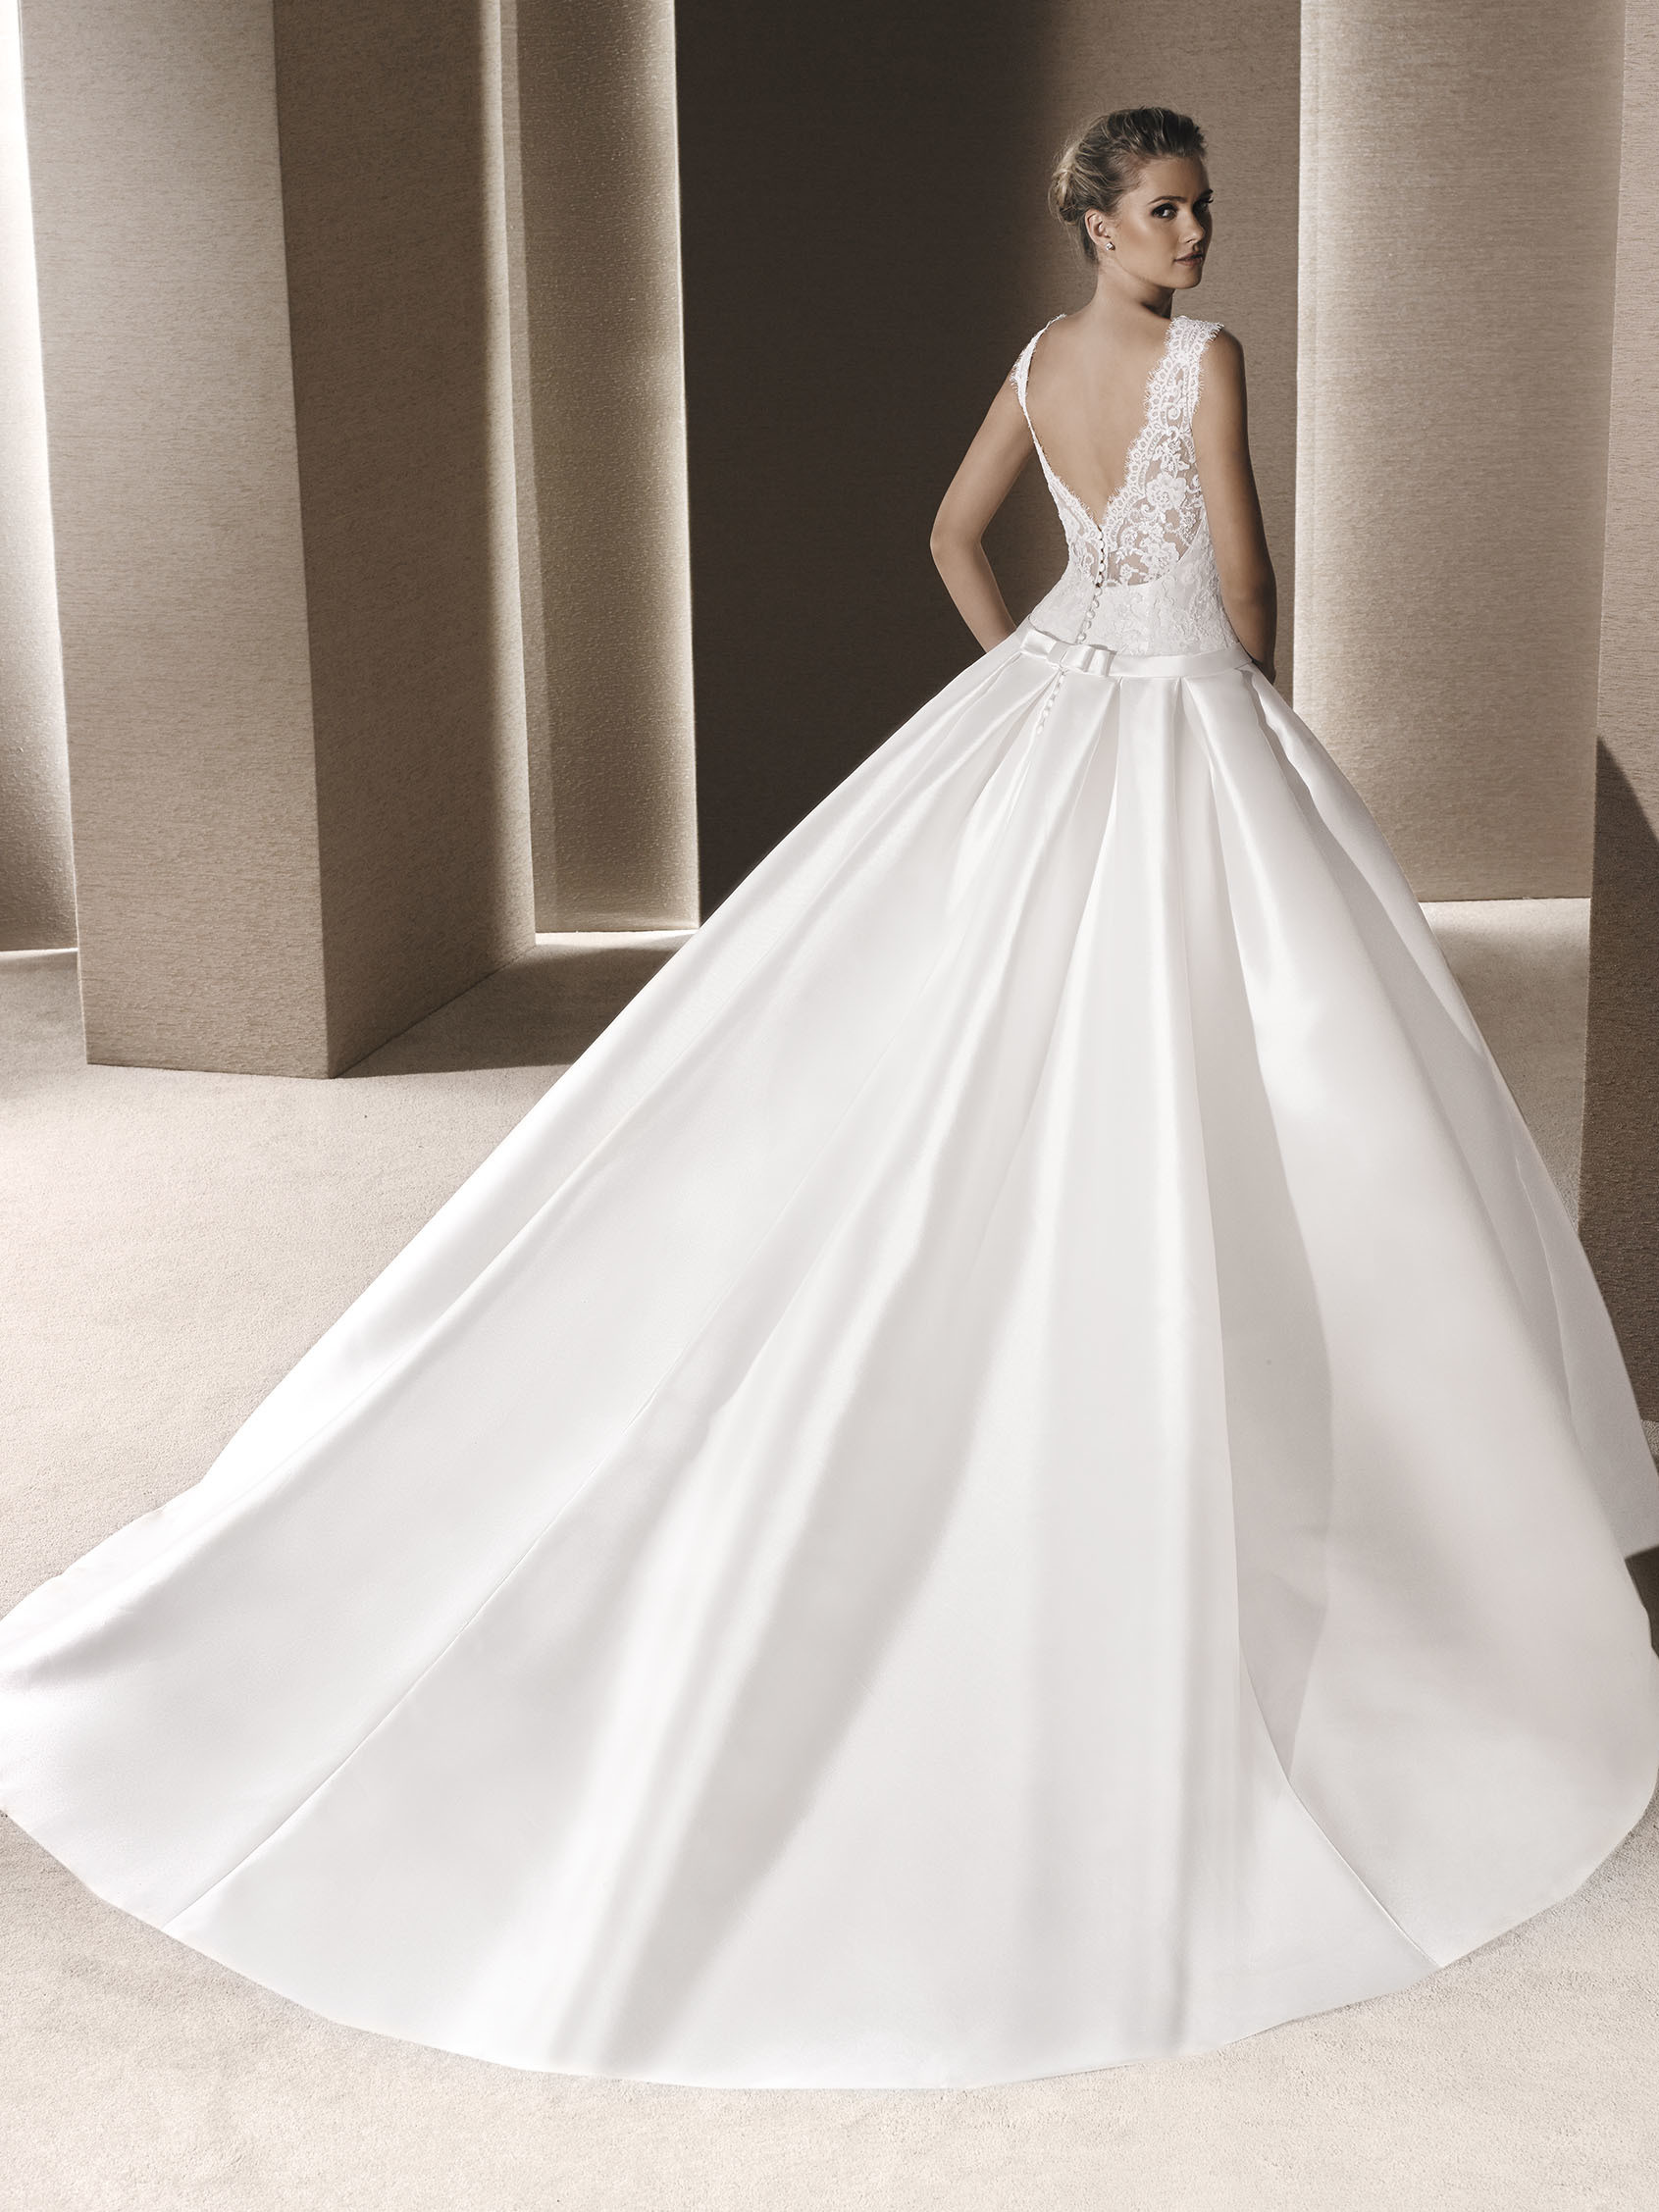 Ballgown Style Wedding Dress In Mikado Silk Sleeveless Lace Bodice With Bateau Illusion Neckline Over Sweetheart Plunging V Back